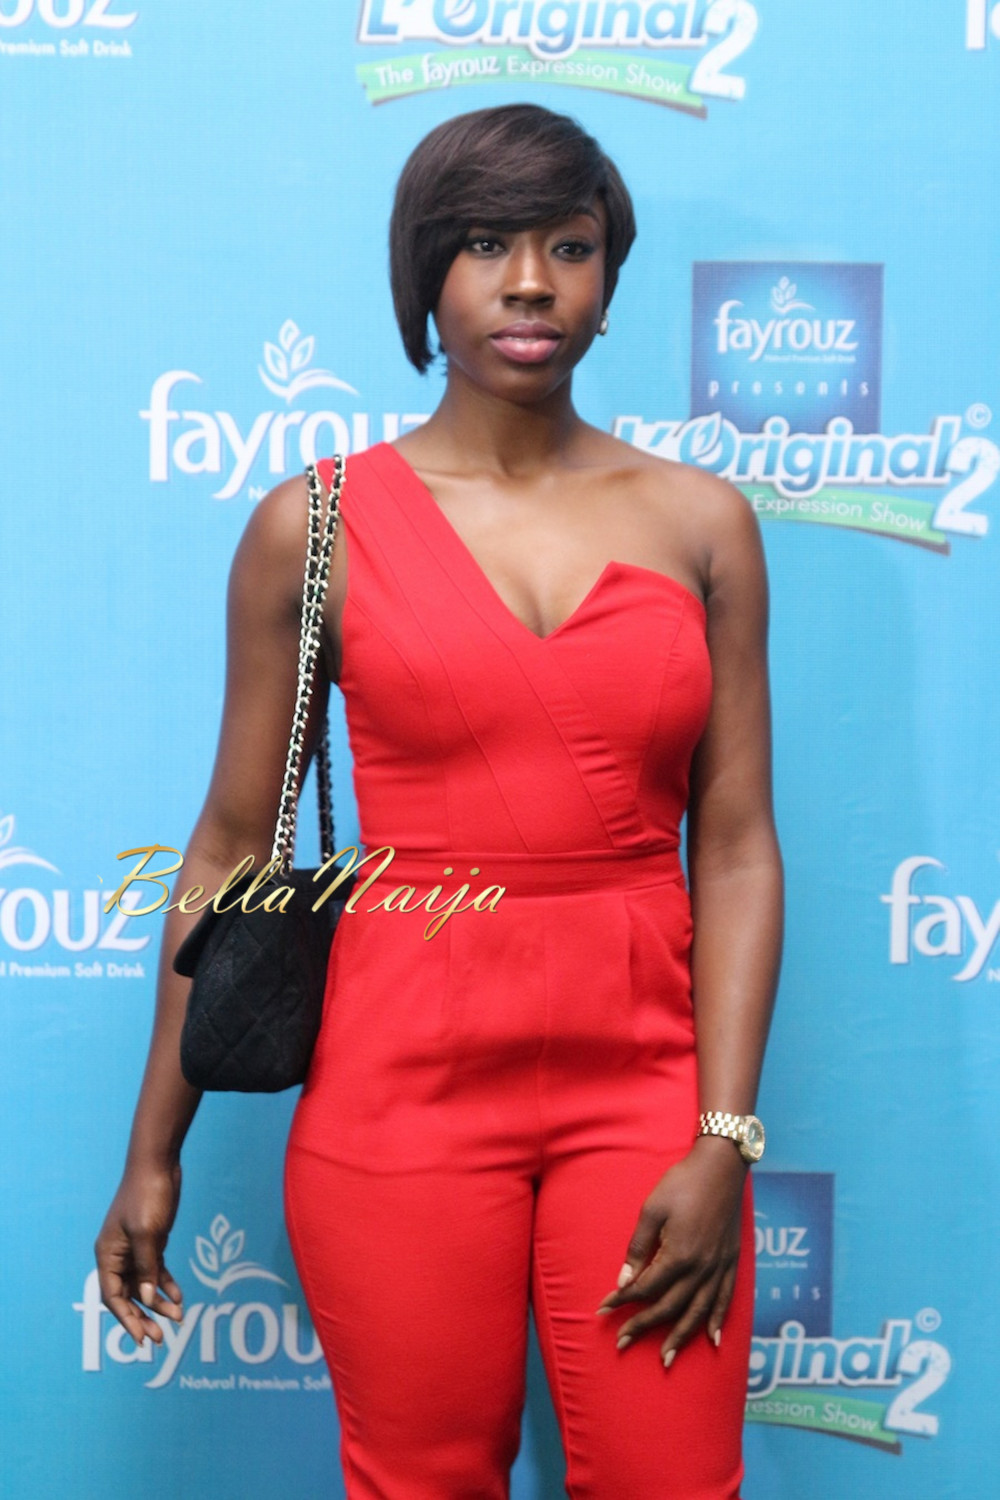 Bn Red Carpet Fab Fashion Awards 2016: BN Red Carpet Fab: Fayrouz L'Original 2 Grand Finale